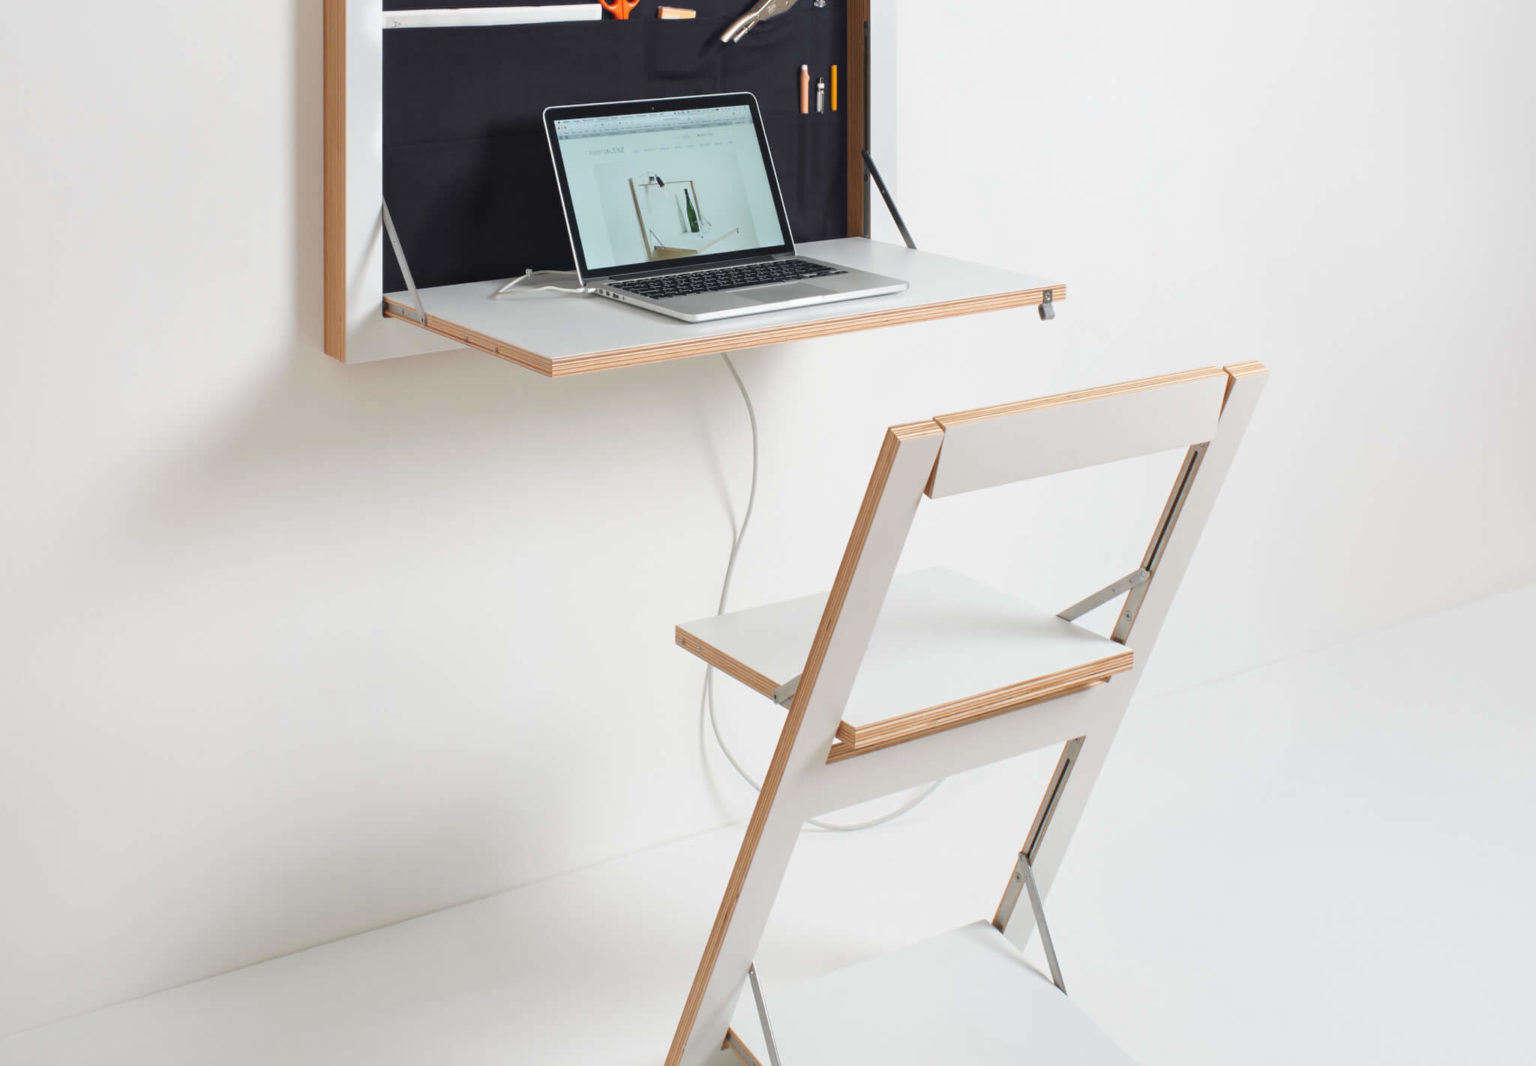 Space-saving Fold-out Tables, Shelves, And Desks From Berlin